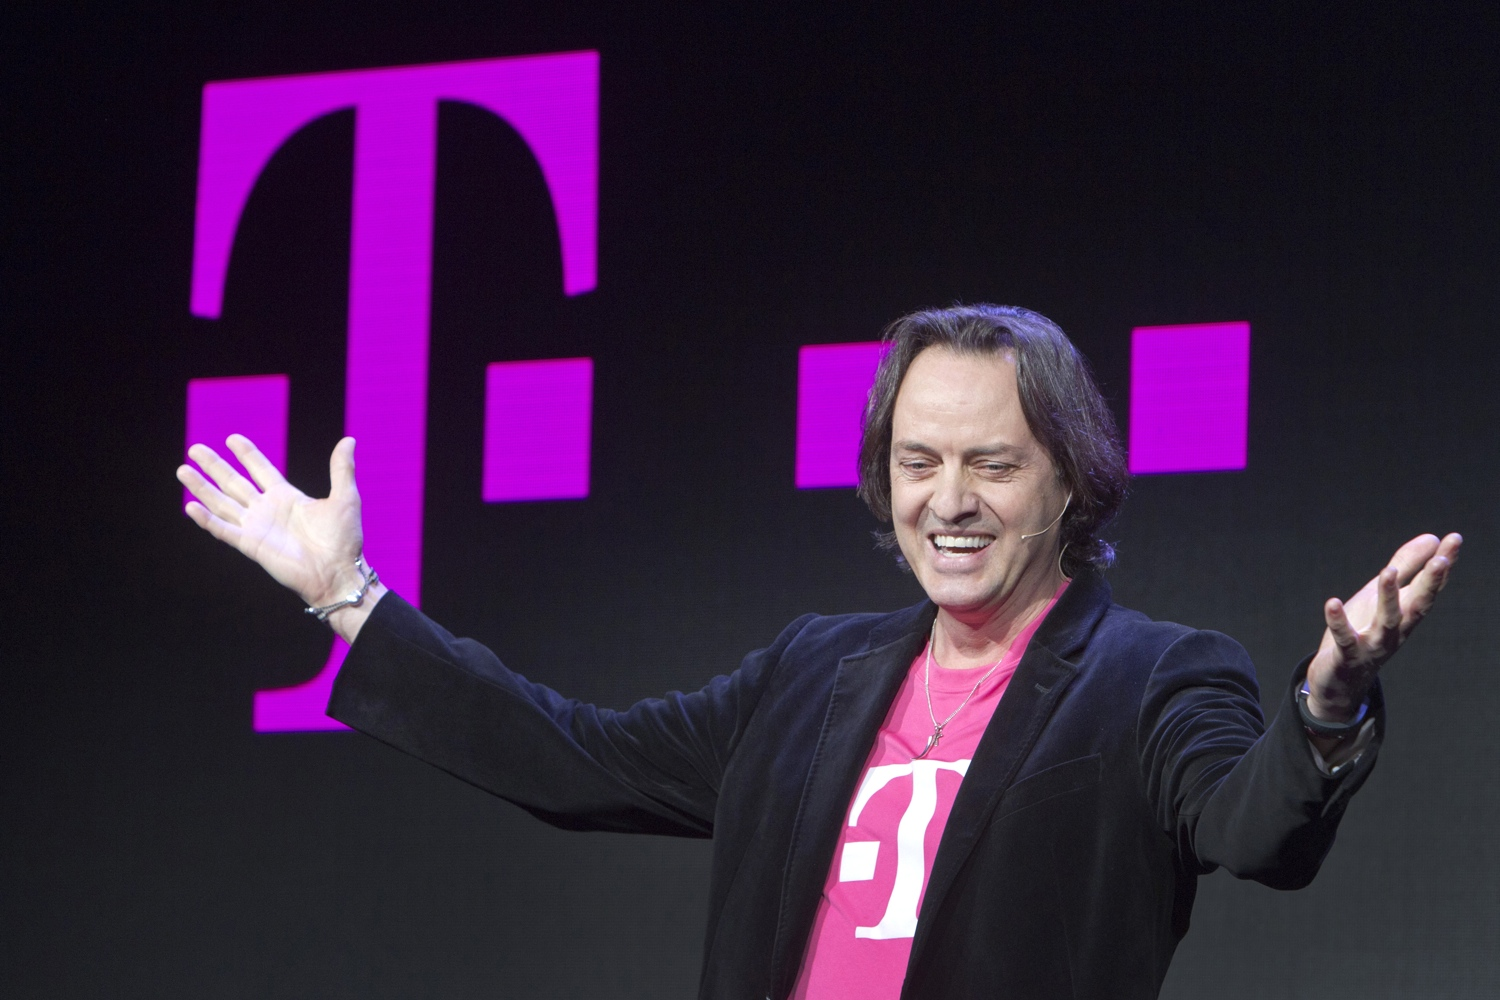 T-Mobile CEO John Legere speaks during a news conference at the 2014 International Consumer Electronics Show (CES) in Las Vegas, Nevada, January 8, 2014.